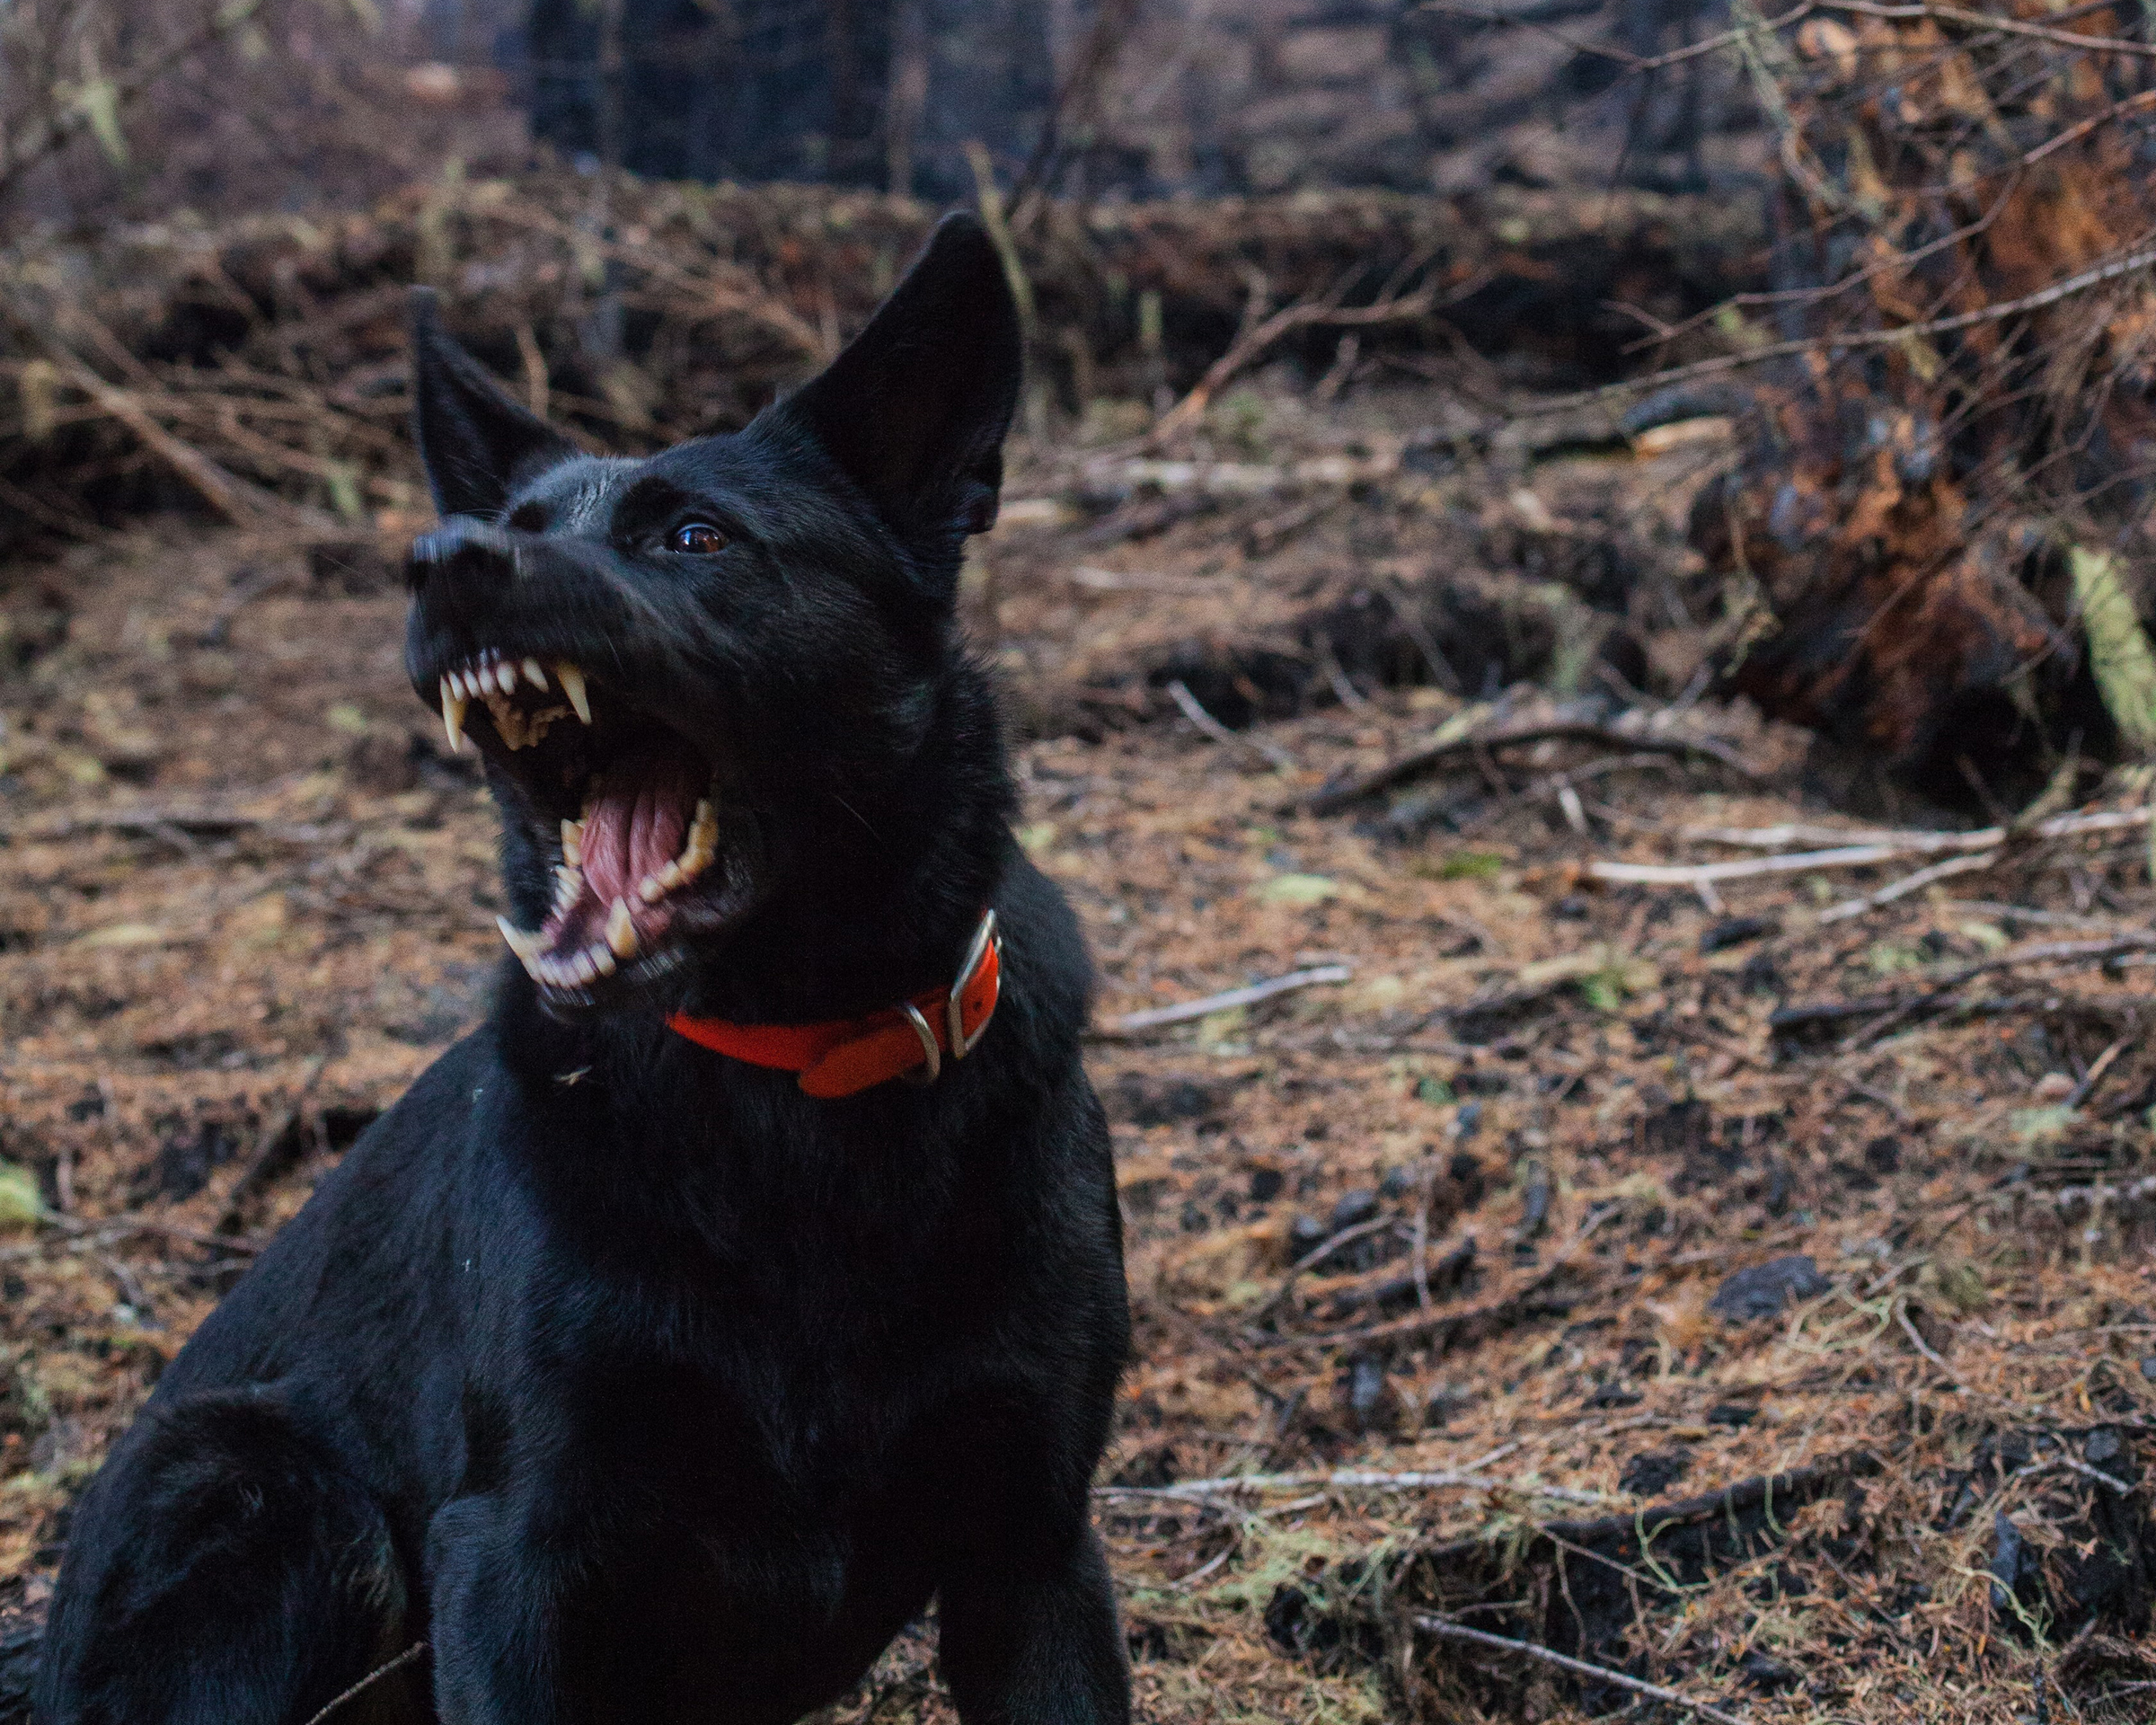 Black dog showing it's teeth in a wooded area - Spitzer Legal Dog Bite Practice Area